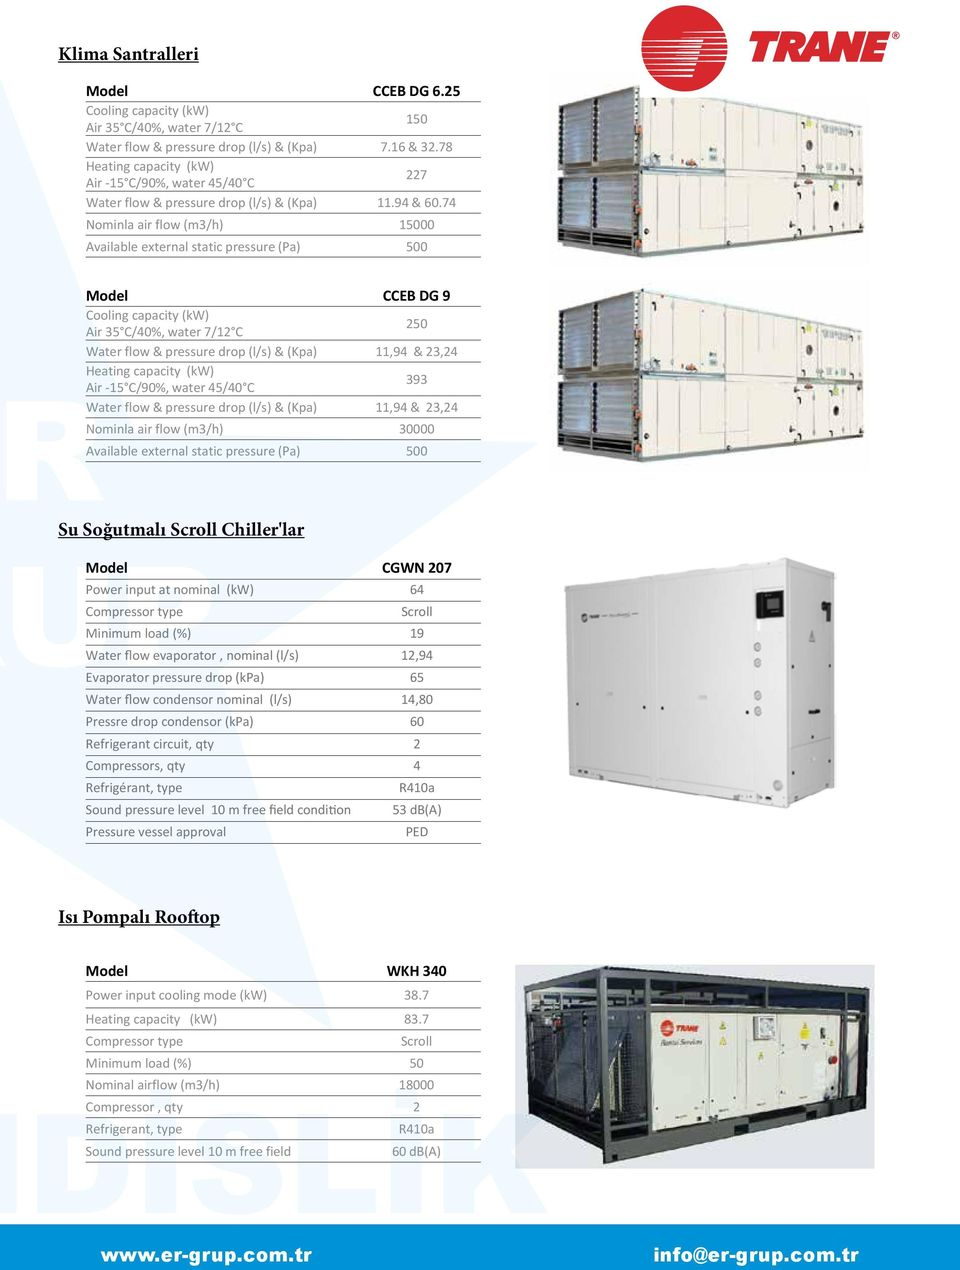 74 Air Handling Unit 30000 m 3 /h 250 kw (1) Nominla air flow (m3/h) 15000 Available external static pressure (Pa) 500 Model CCEB DG 9 Cooling Electrical capacity data (kw) 250 Air 35 C/40%, water